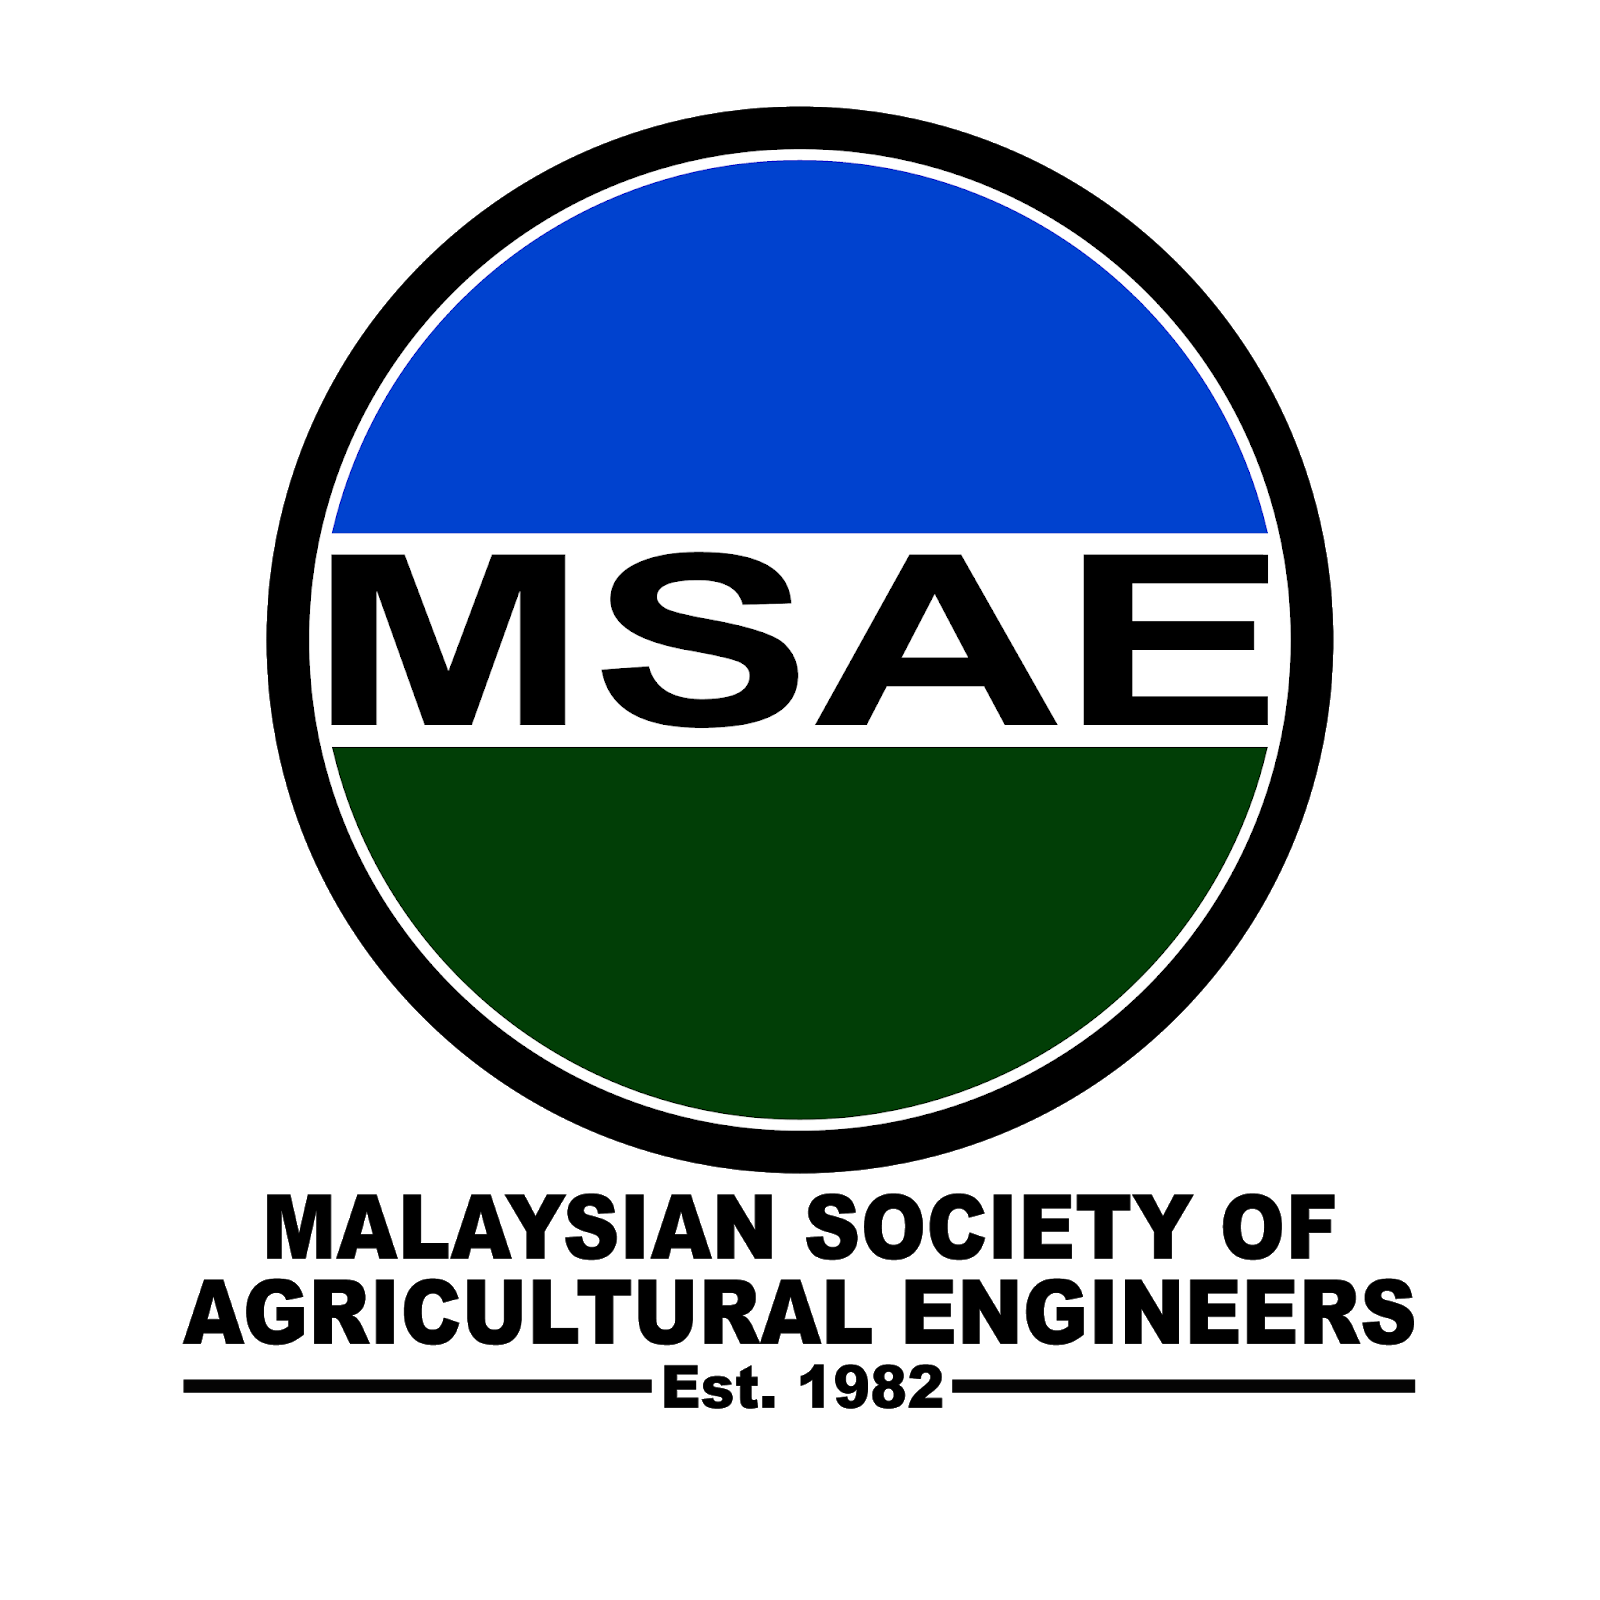 Engineer clipart agricultural engineering. Msae malaysian society of